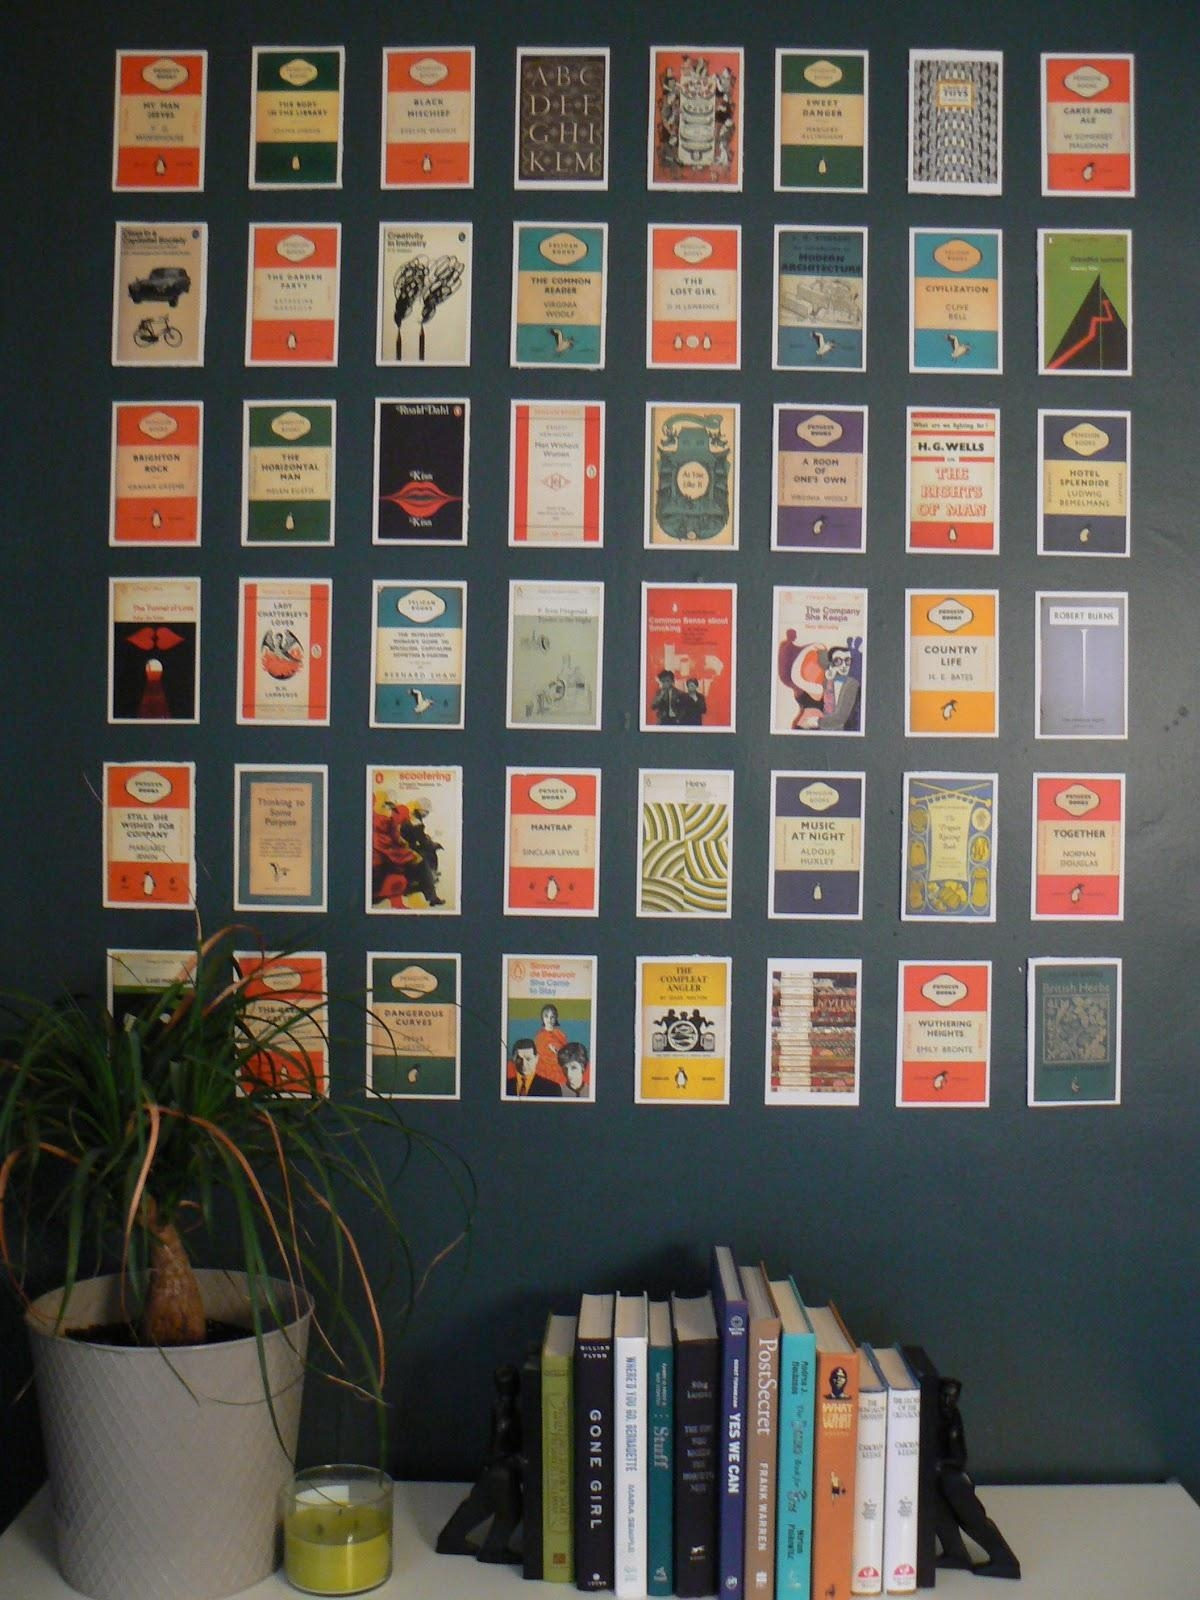 Diy Postcard Wall Art | Little House Design Intended For Penguin Books Wall Art (View 1 of 20)